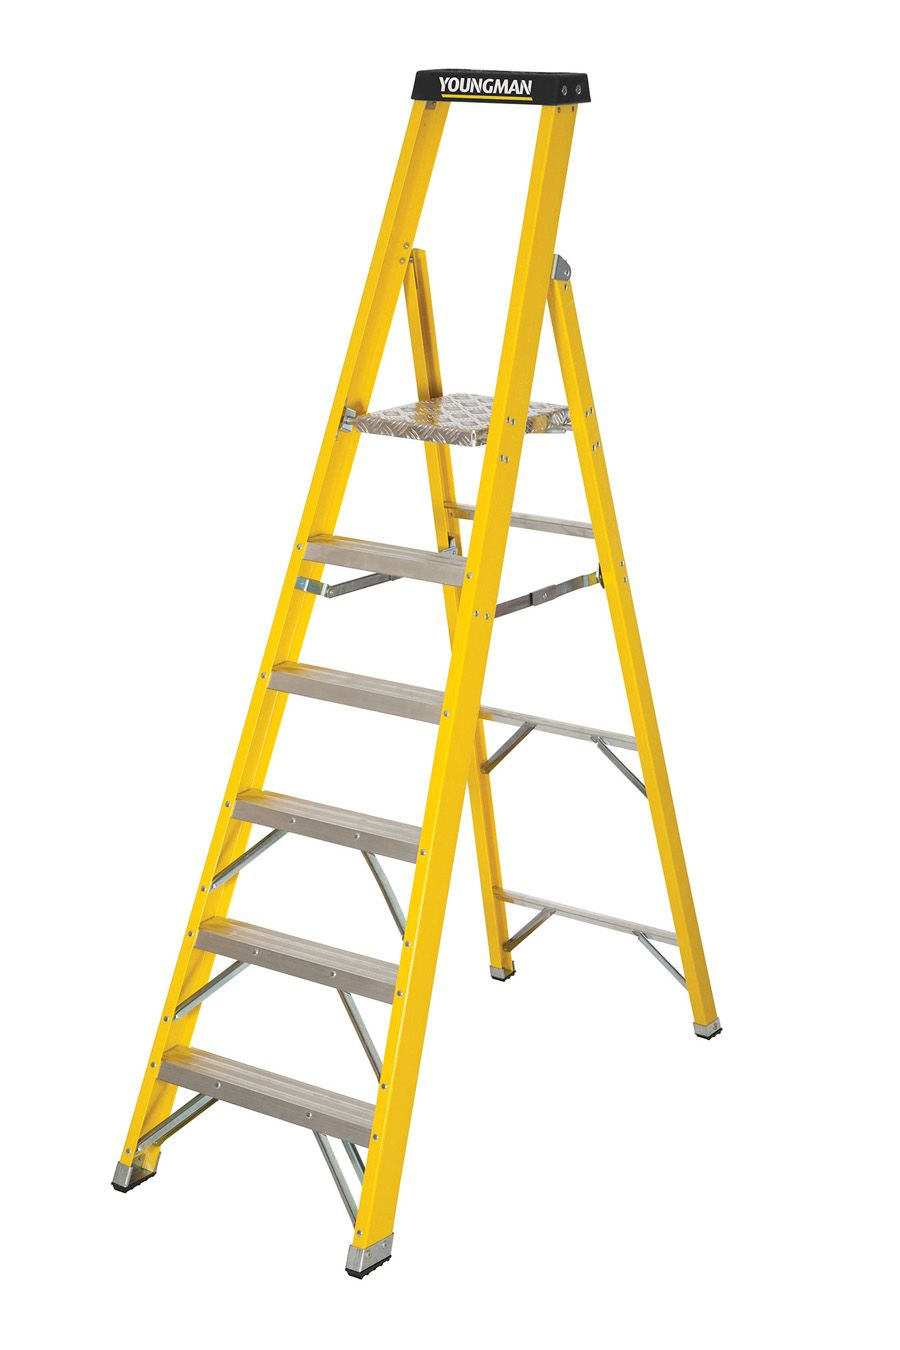 Youngman S400 Fibreglass Heavy Duty Platform Step Ladders